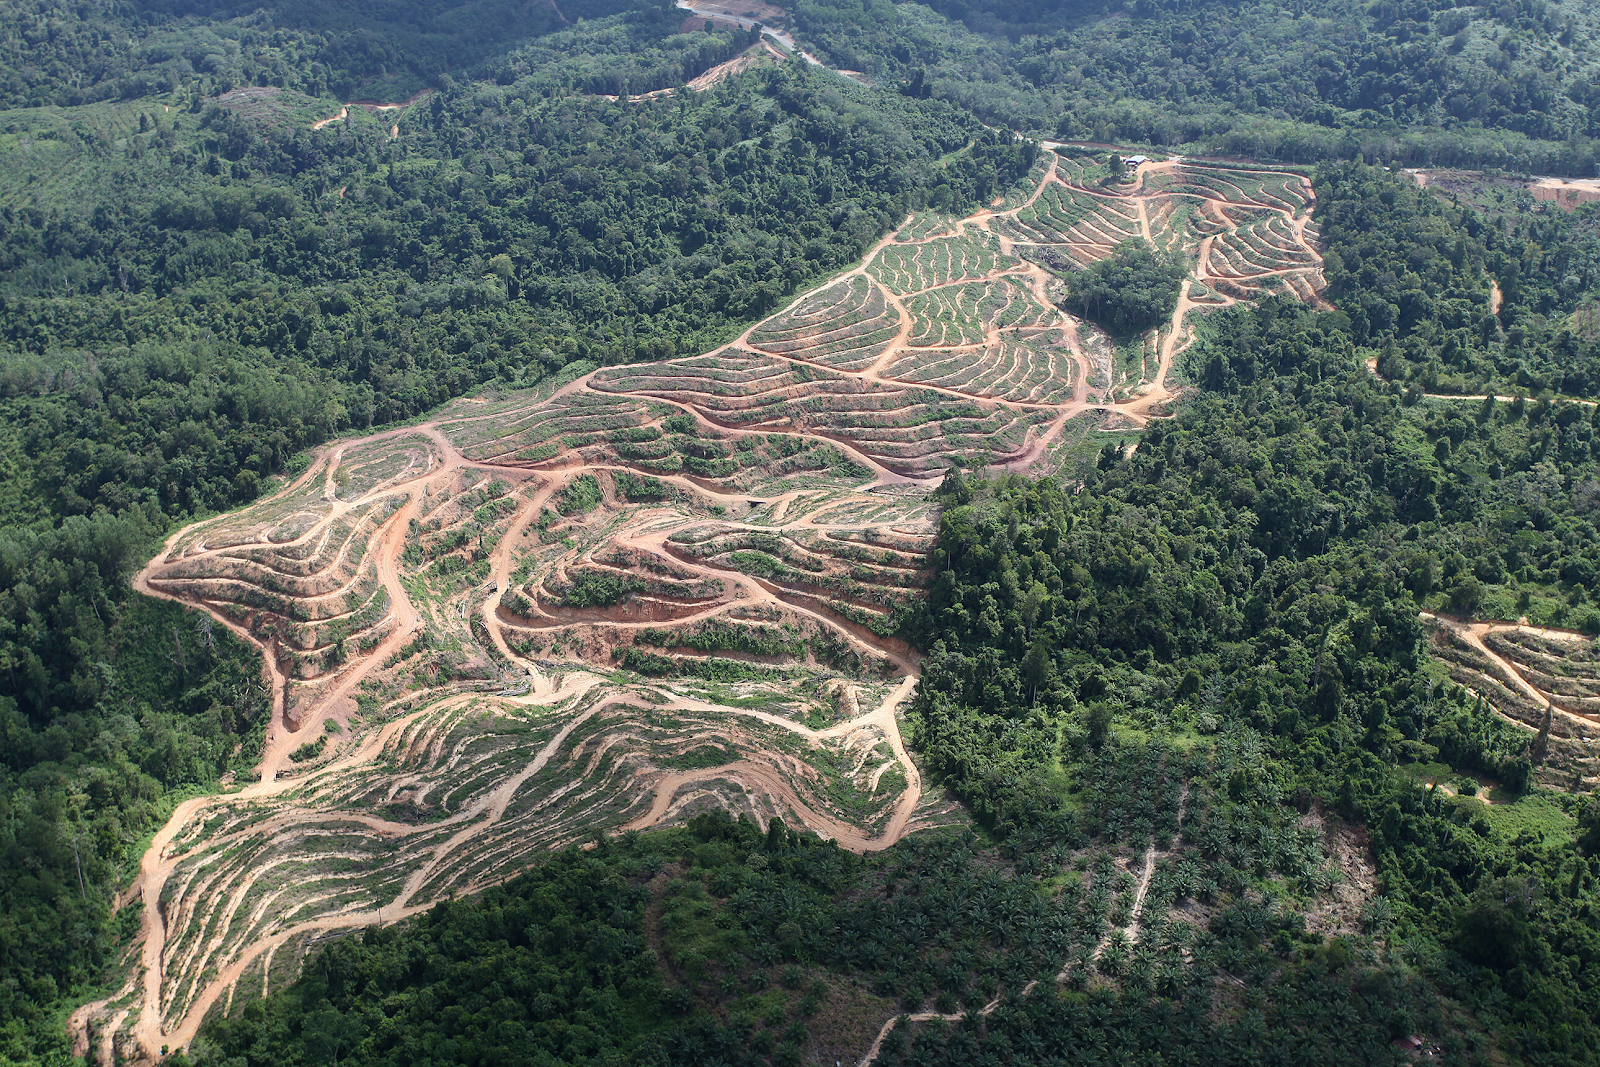 Aerial view photo of forests in Malaysia being cleared for oil plantations.